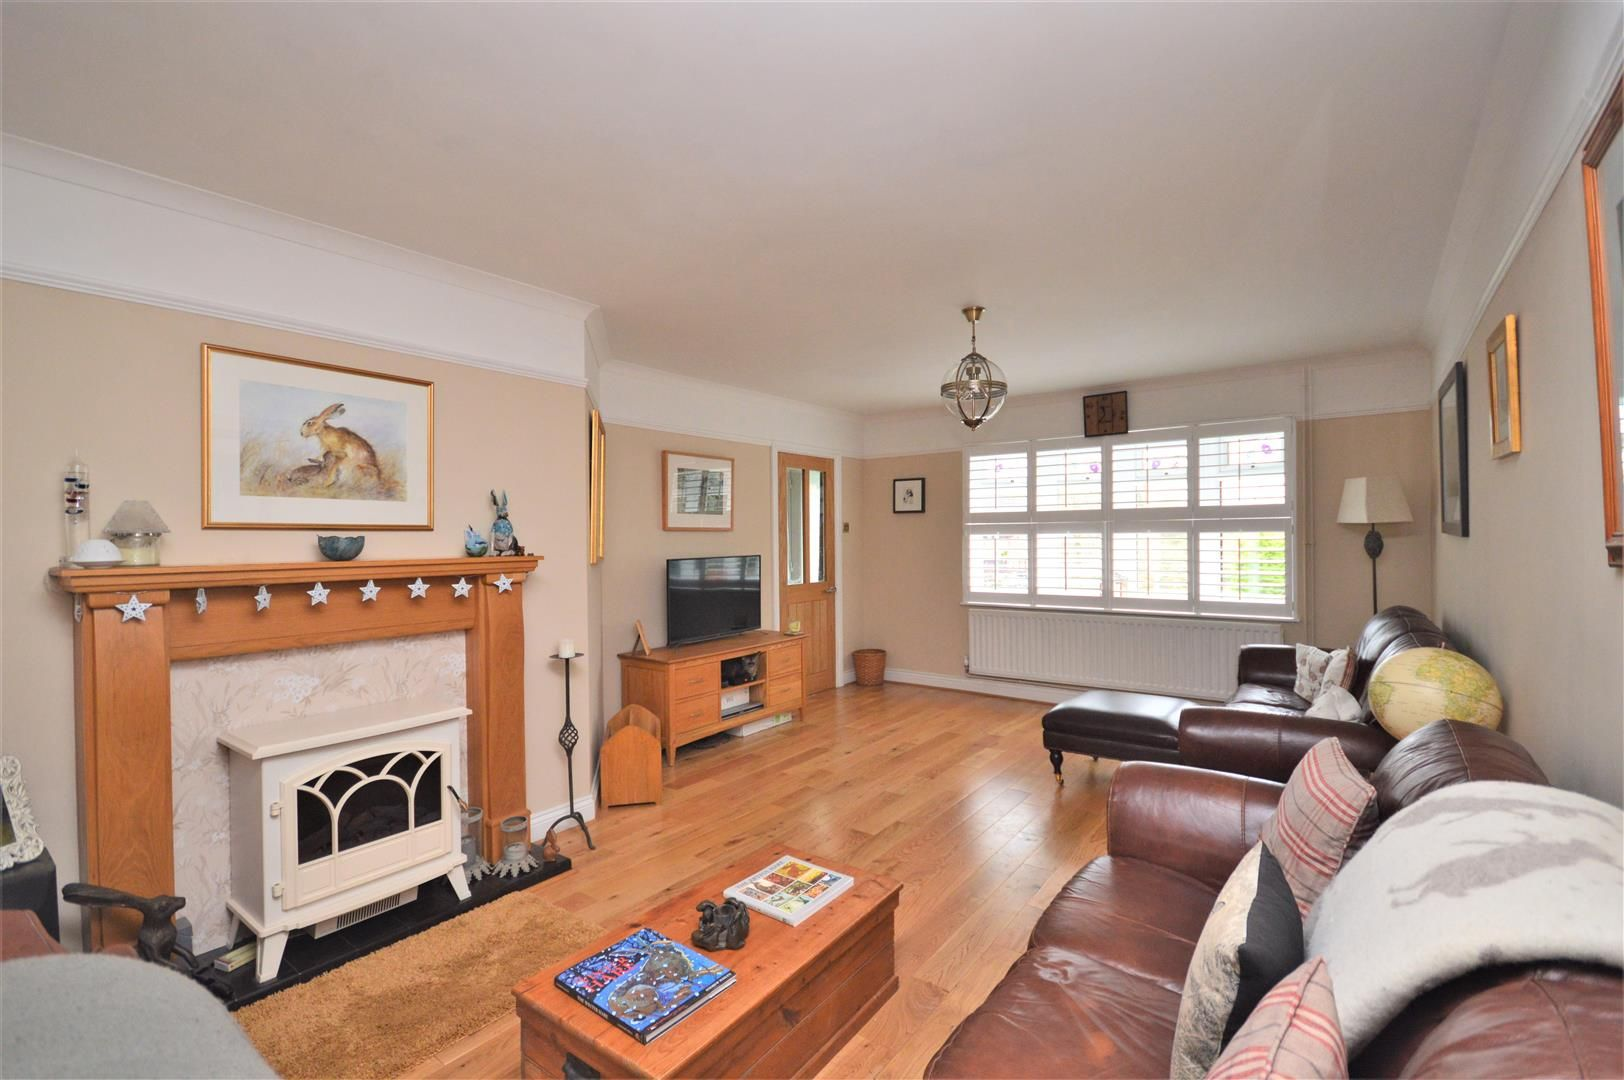 4 bed detached for sale in Kings Caple 1